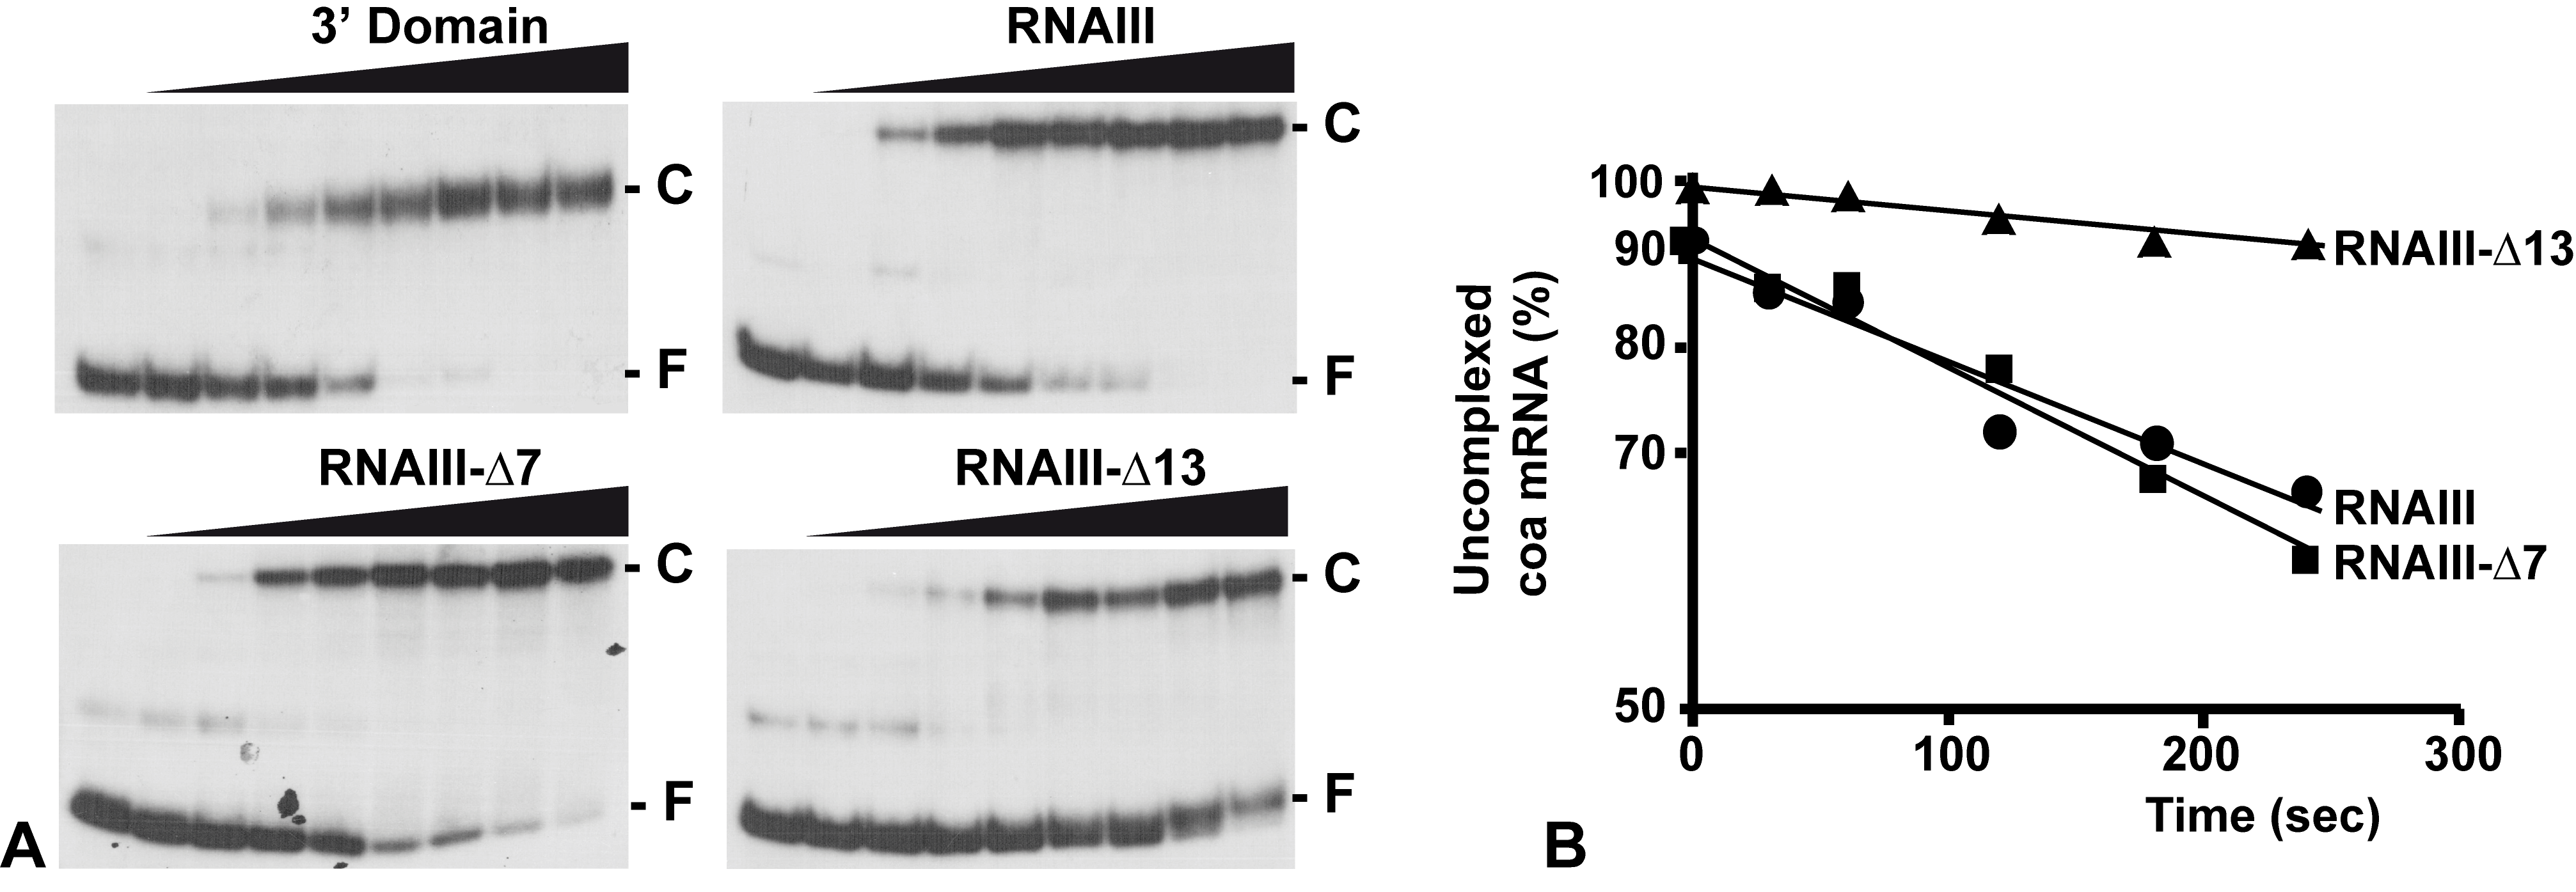 RNAIII binds efficiently to <i>coa</i> mRNA <i>in vitro</i>.